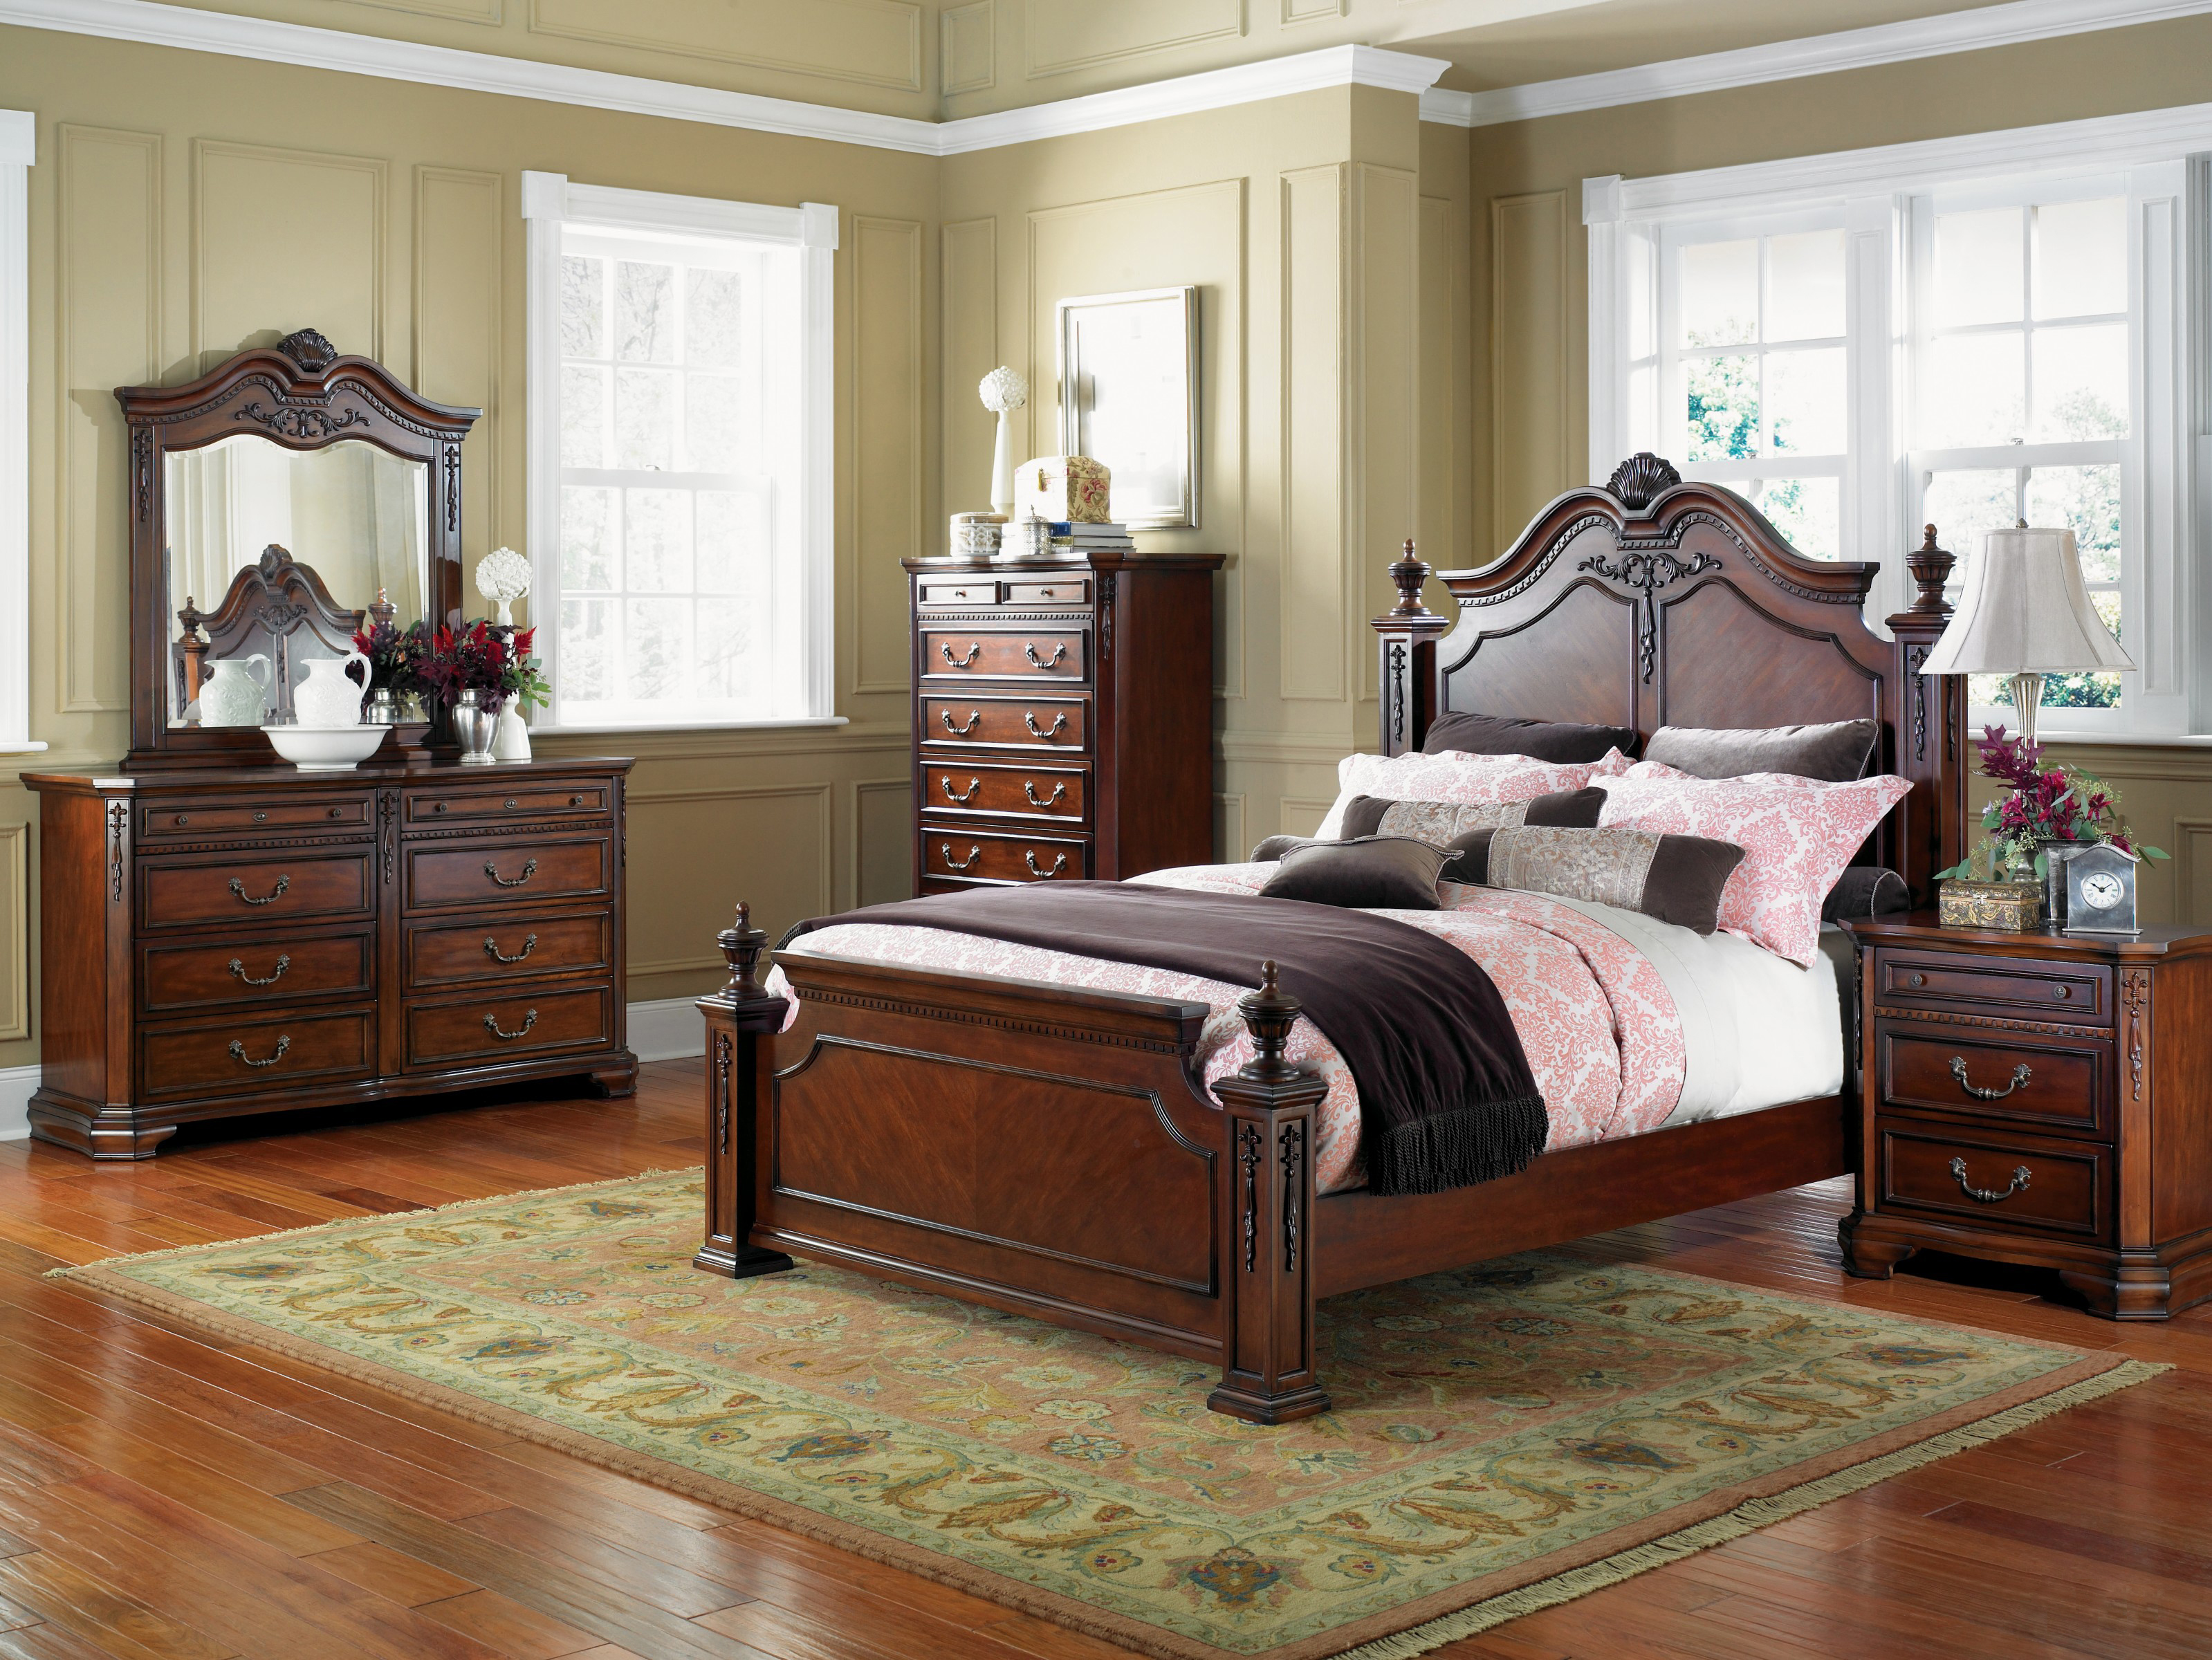 Bedroom furniture for Bedroom set with bed